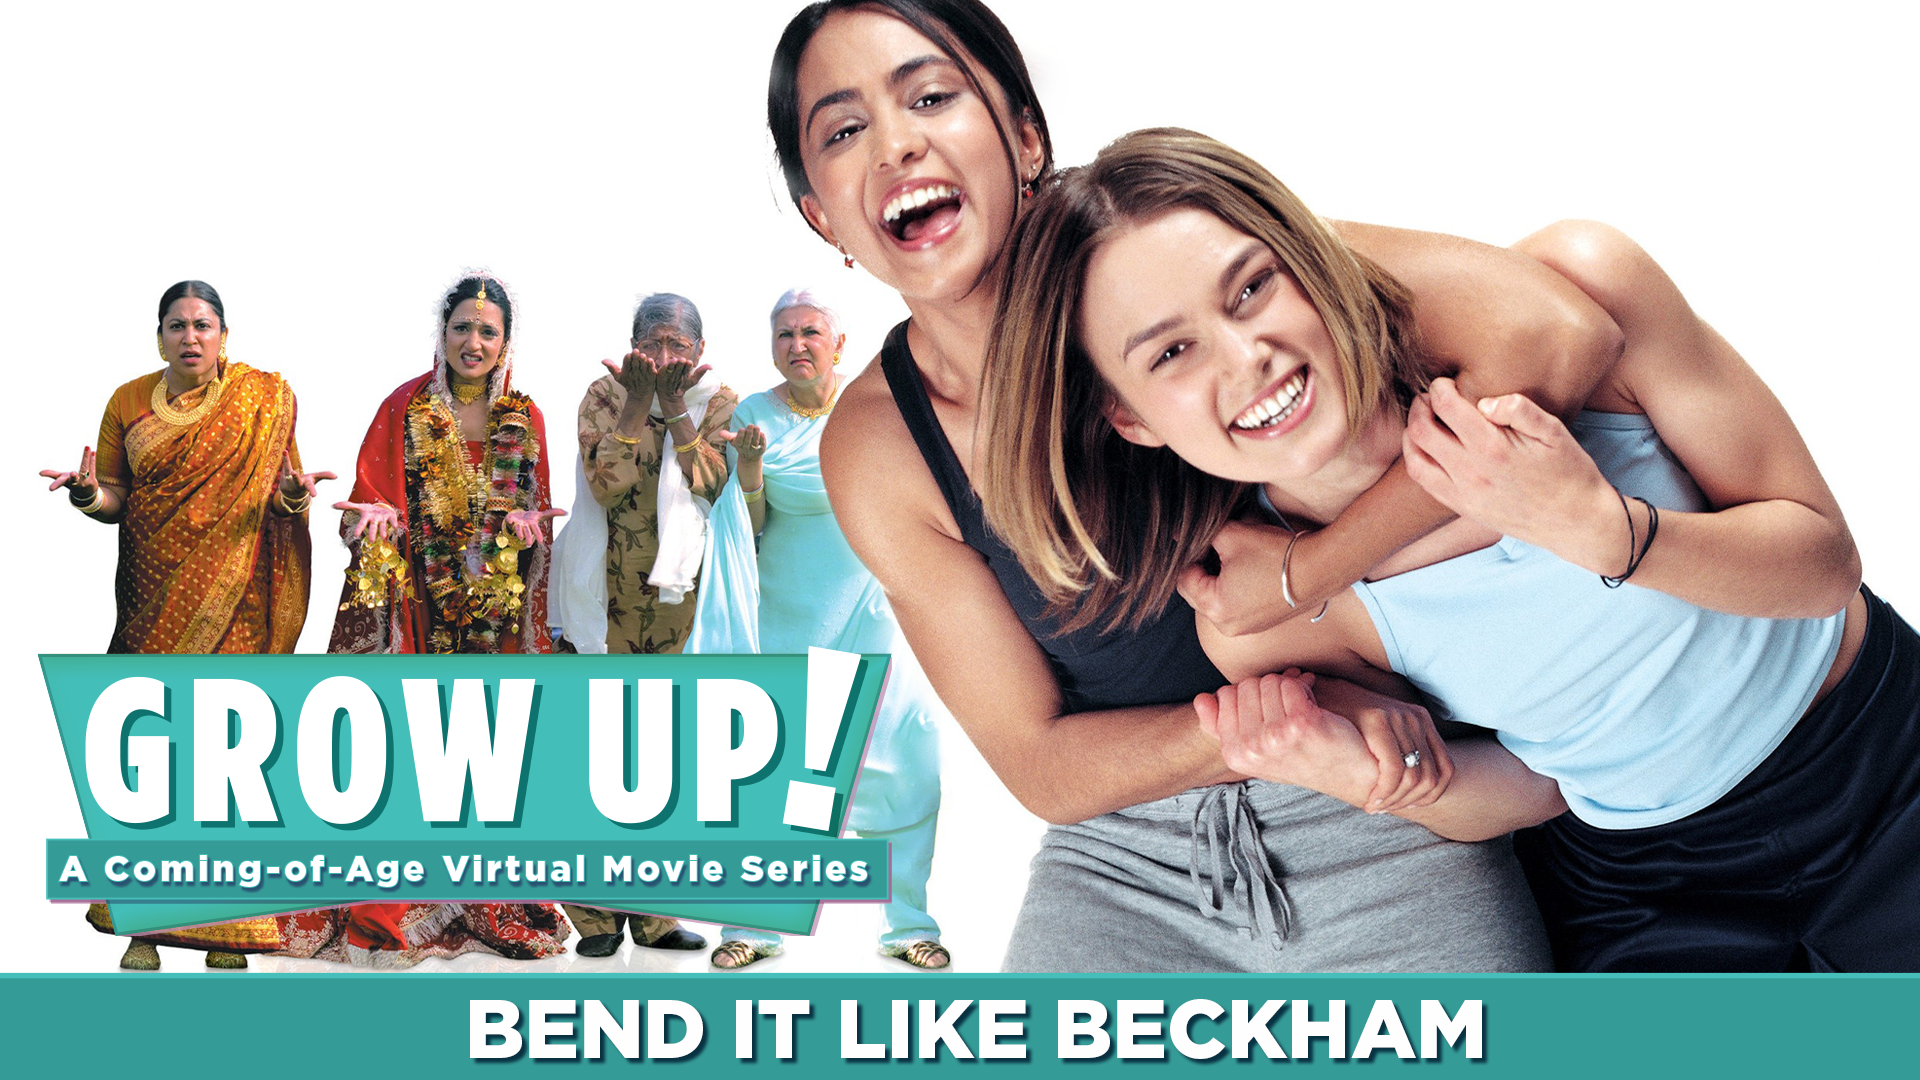 Grow Up! A Coming-of-Age Virtual Movie Series - Bend it Like Beckham